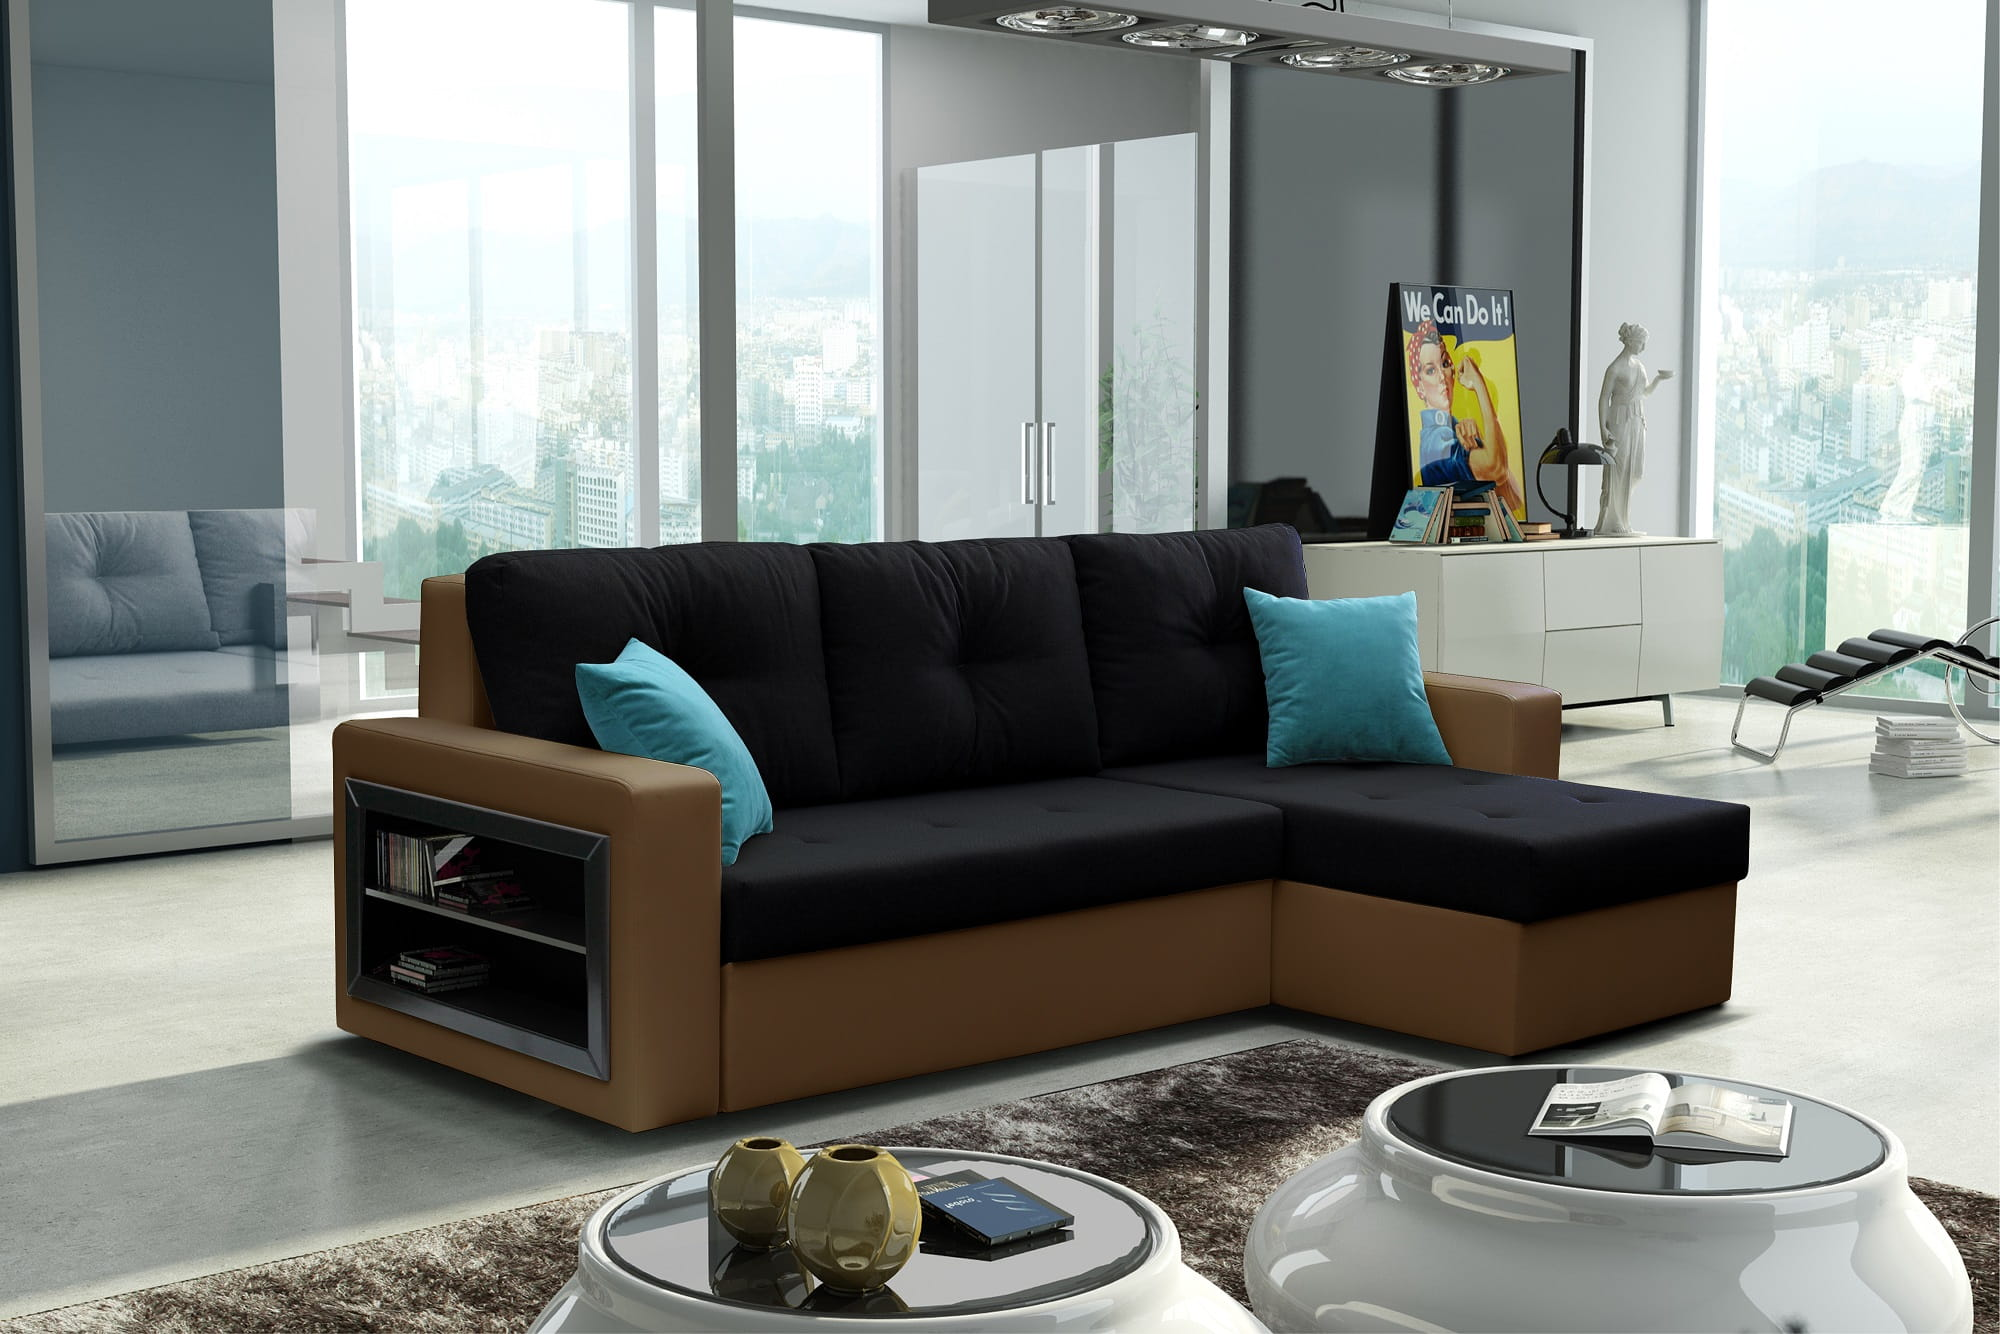 wohnlandschaft eckgarnitur sofa forte mit schlaffunktion bettkasten schrank top ebay. Black Bedroom Furniture Sets. Home Design Ideas